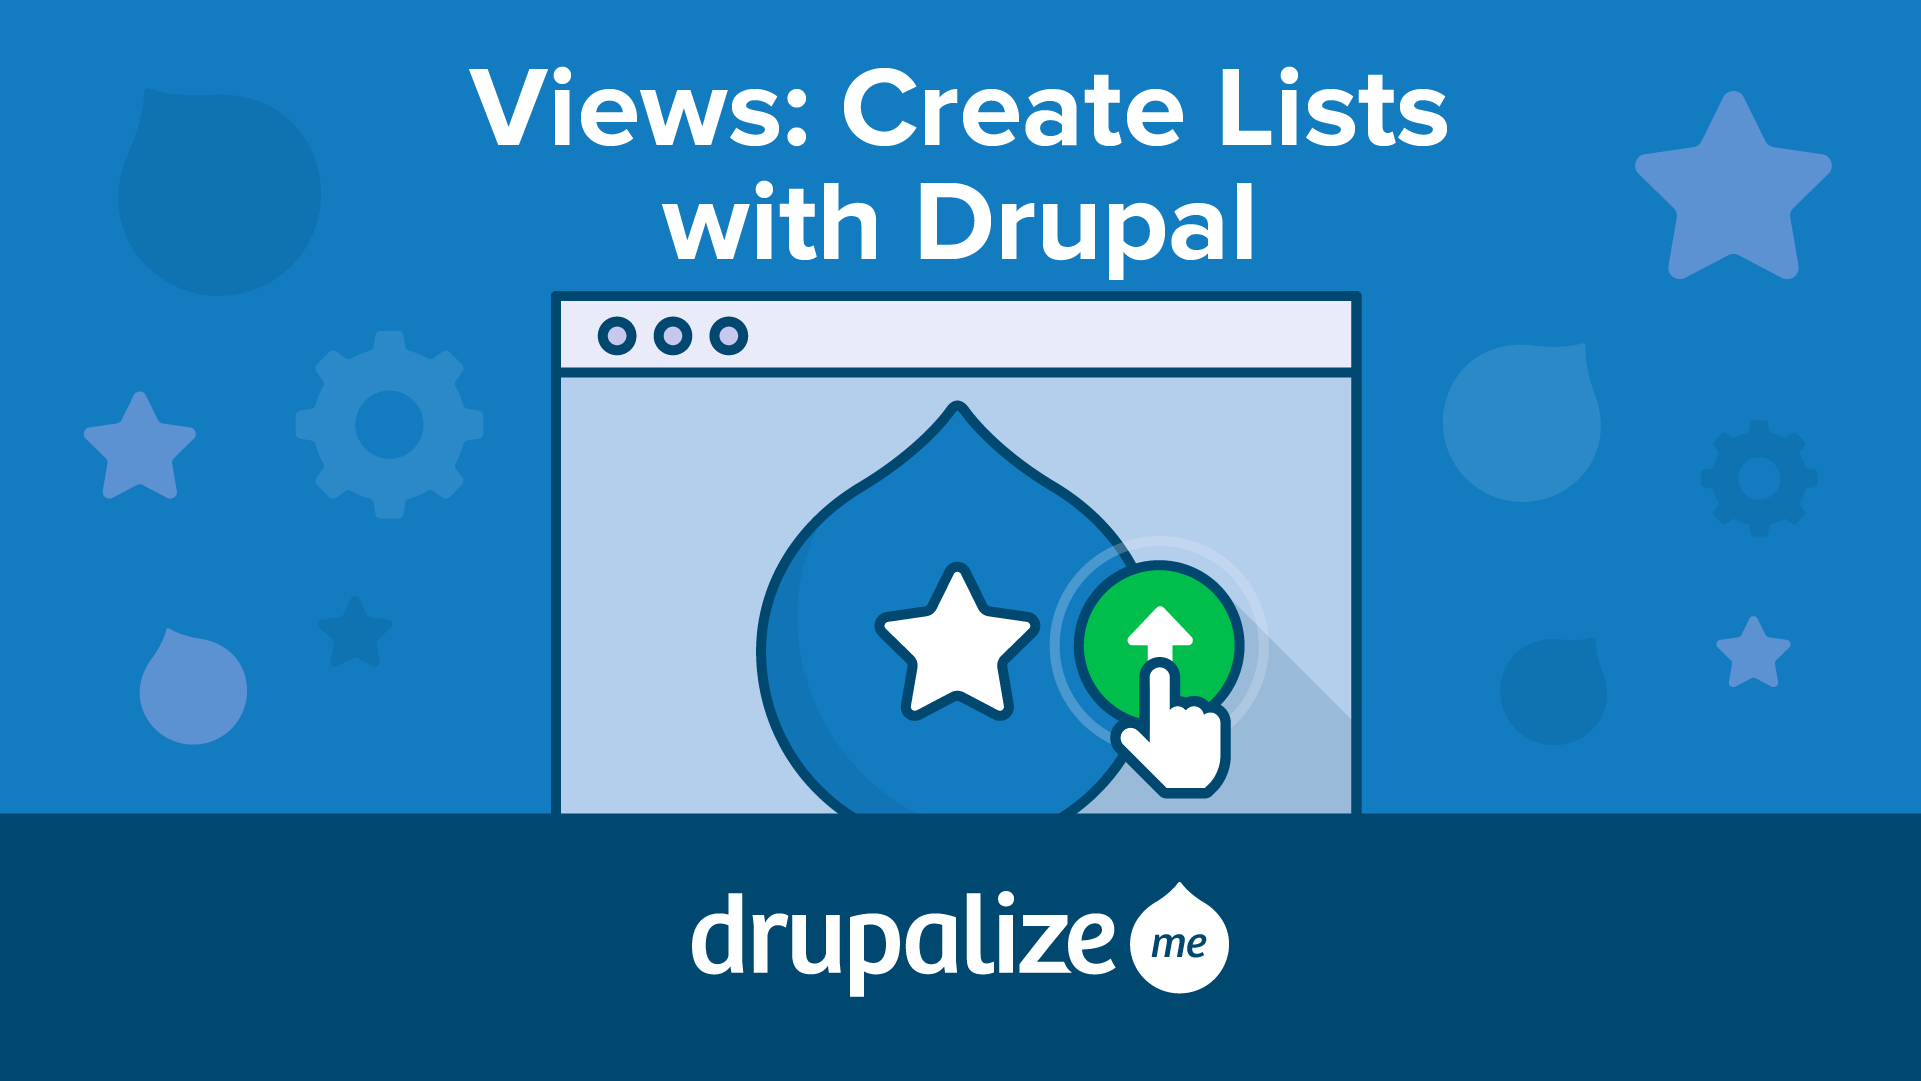 Views: Create Lists with Drupal